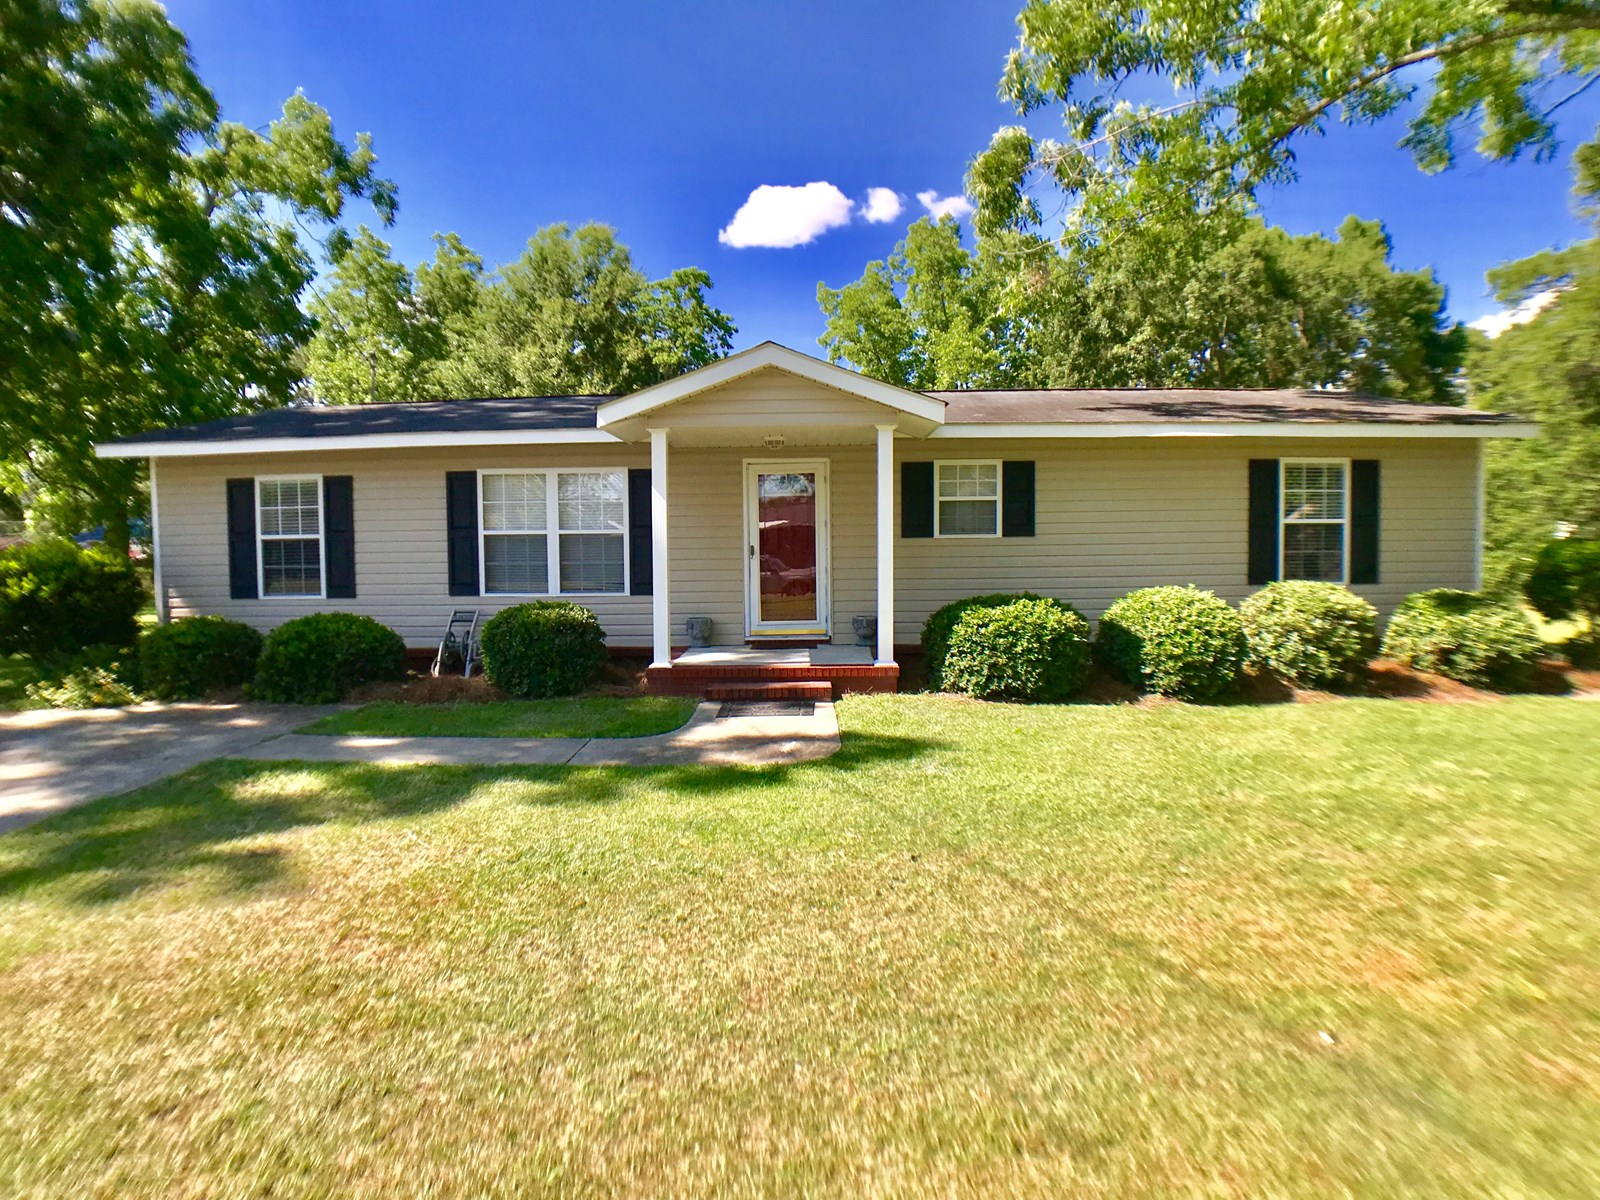 3B/2B HOME FOR SALE IN TOWN OF GENEVA, ALABAMA